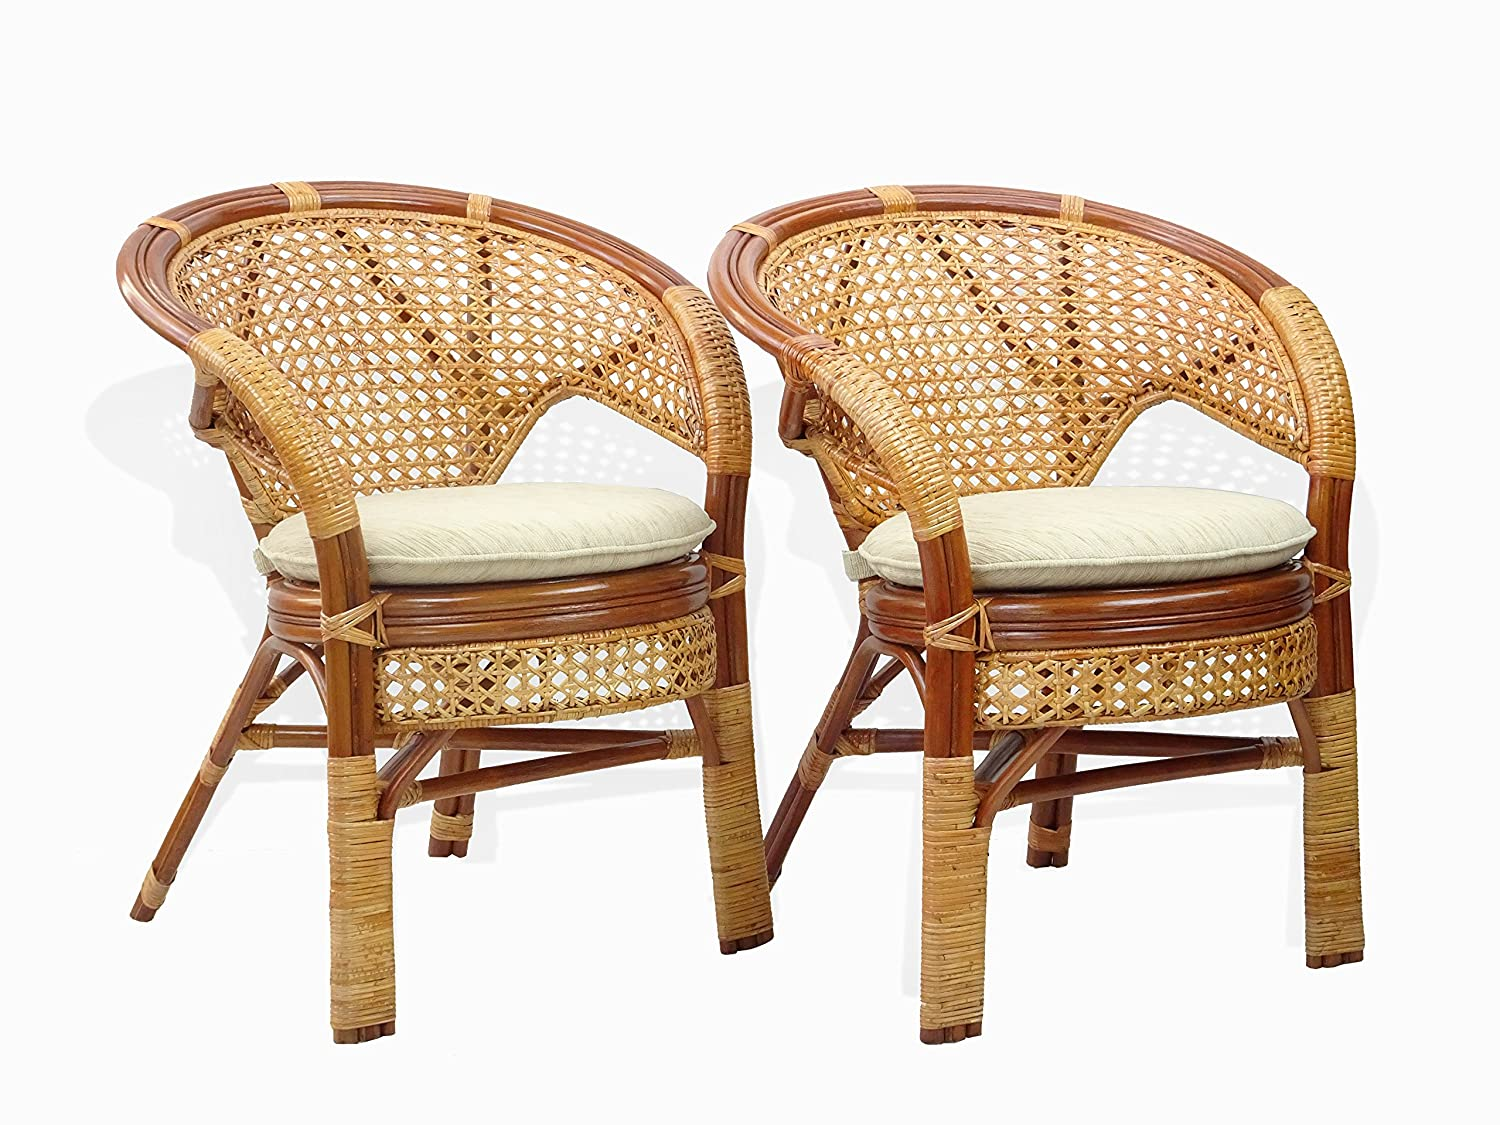 Pelangi Handmade Rattan Dining Wicker Chair W cushion Colonial Light Brown